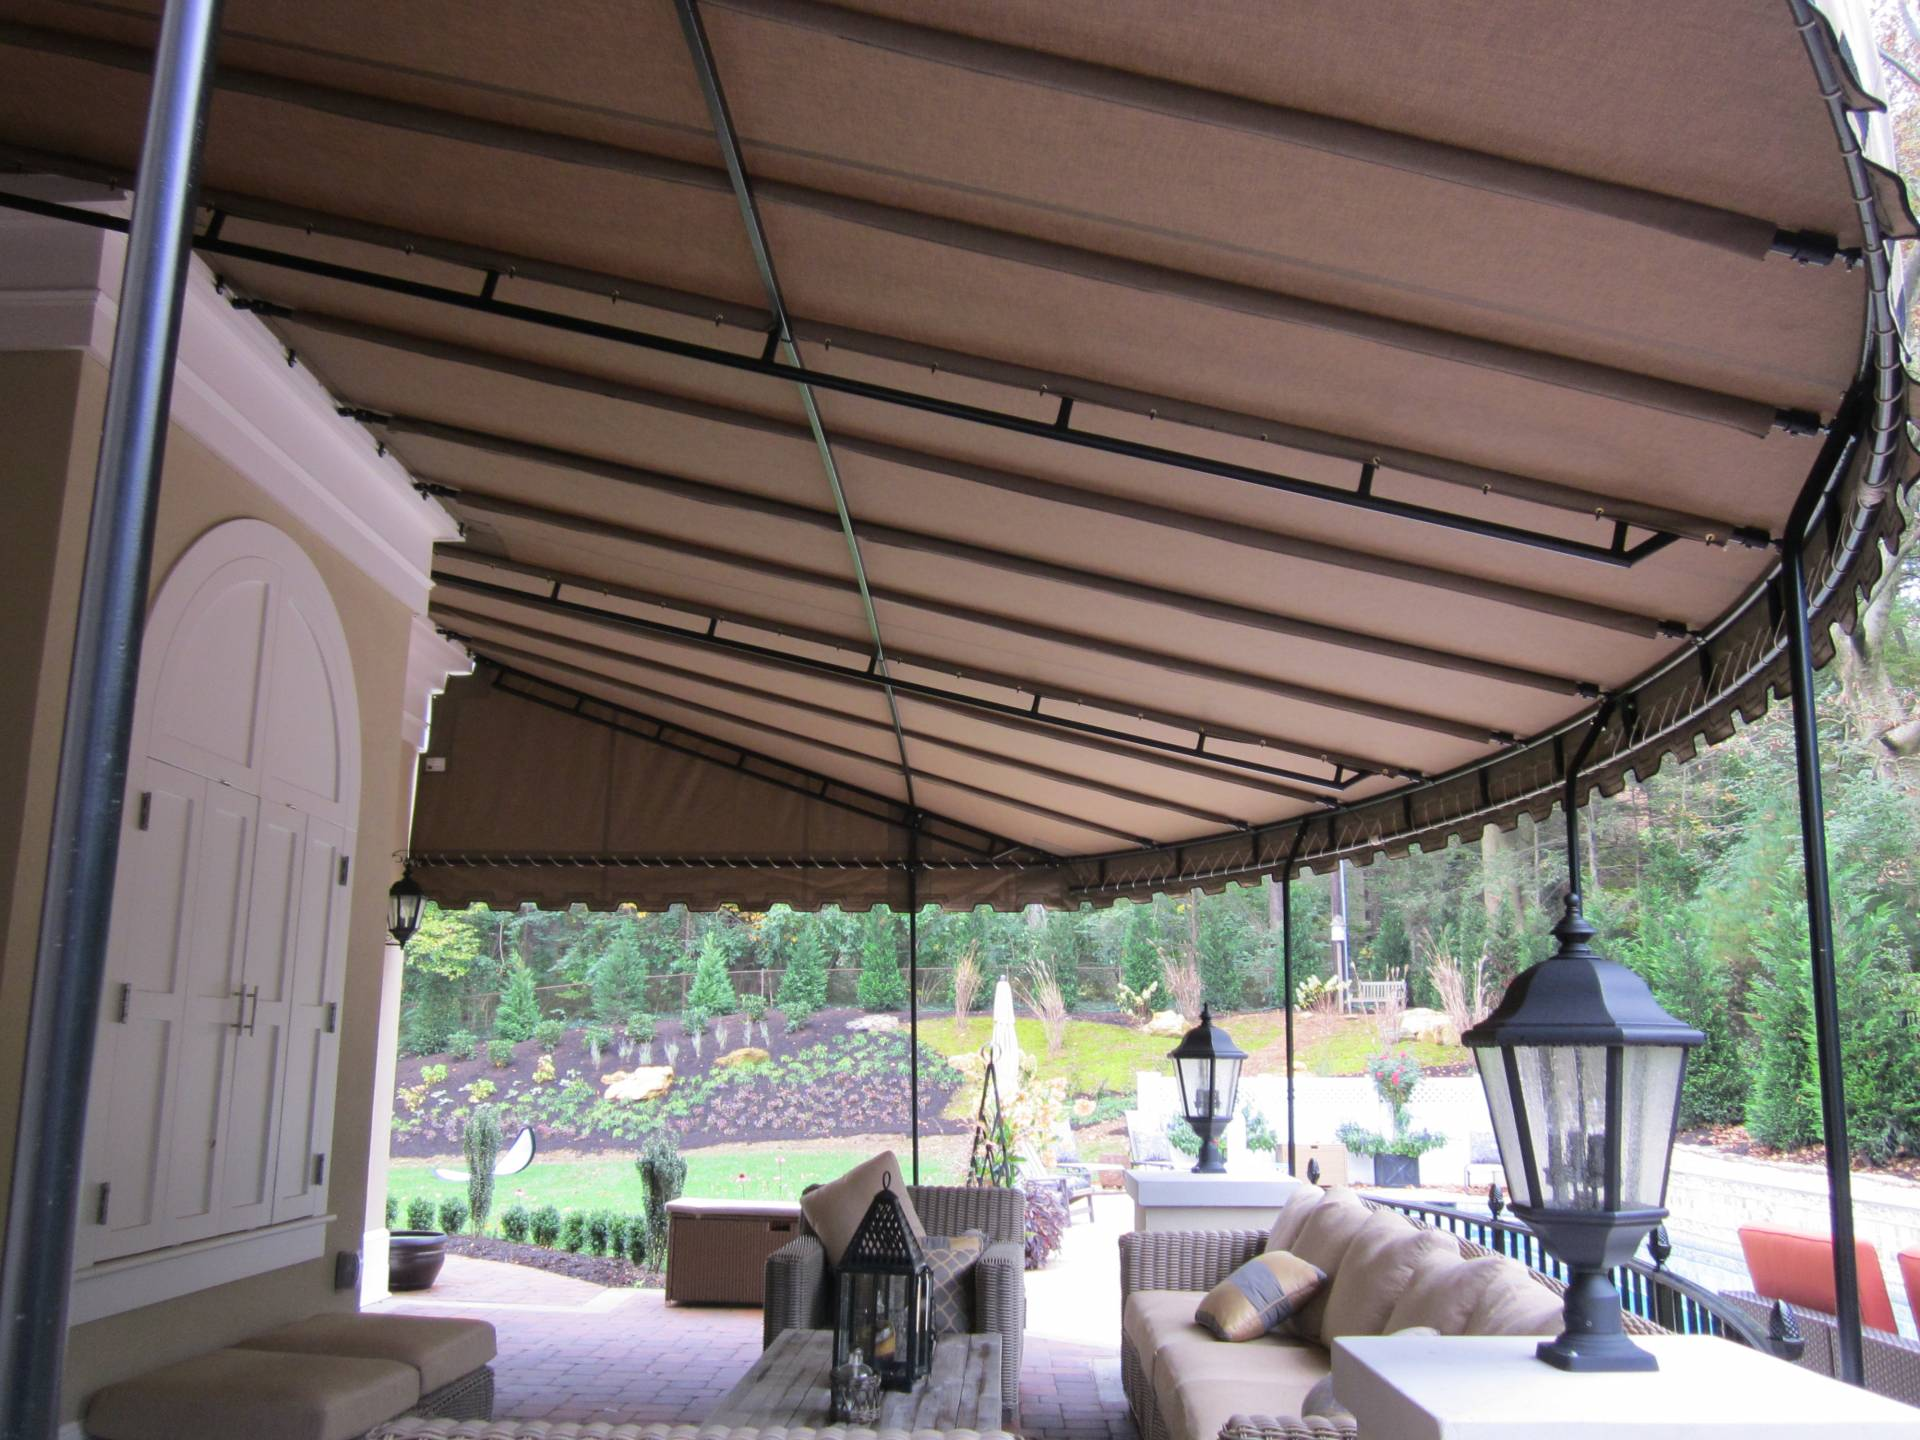 Retractable Awning For Deck